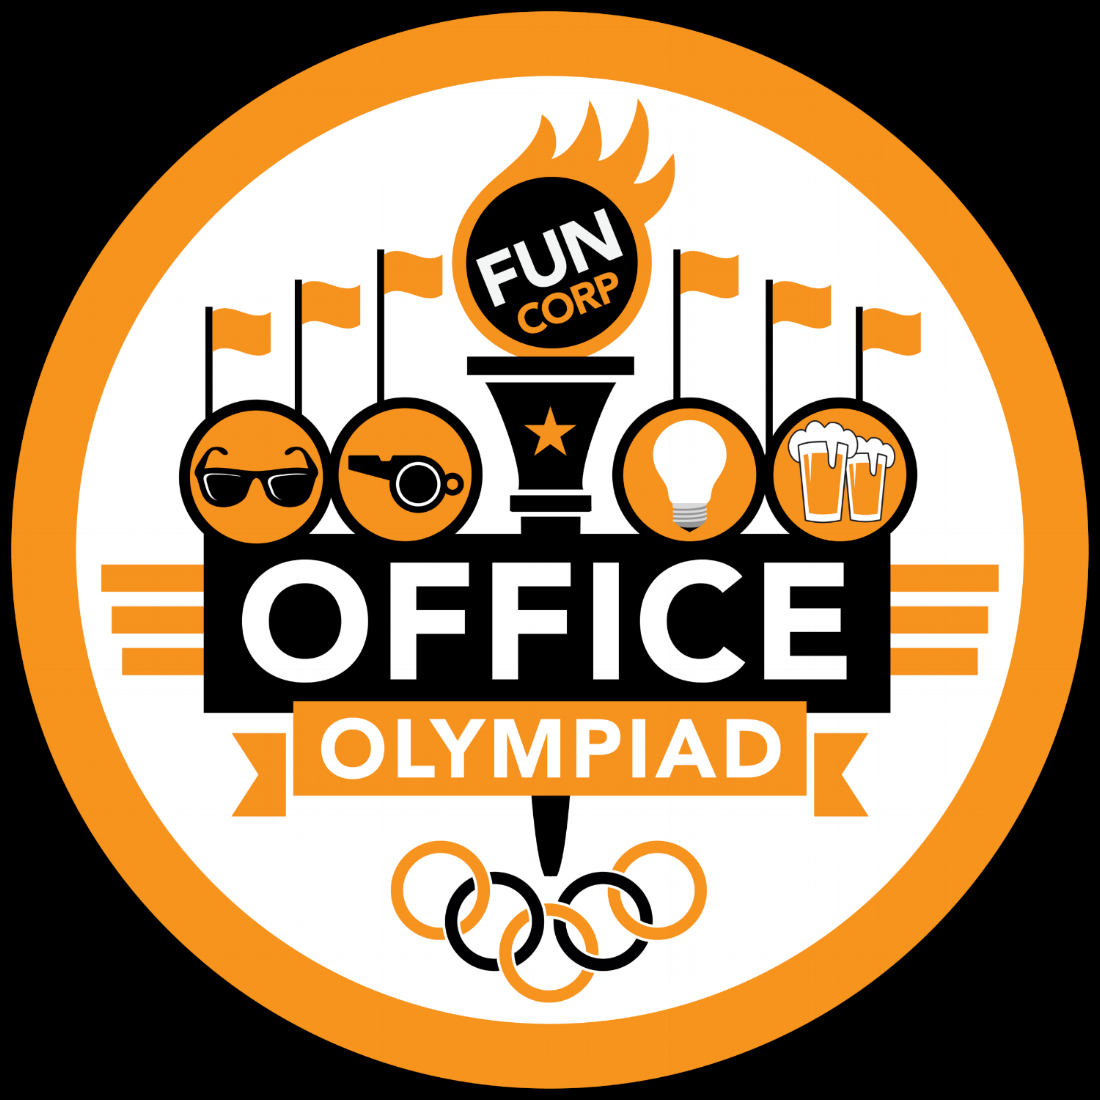 OfficeOlympiad-02.png